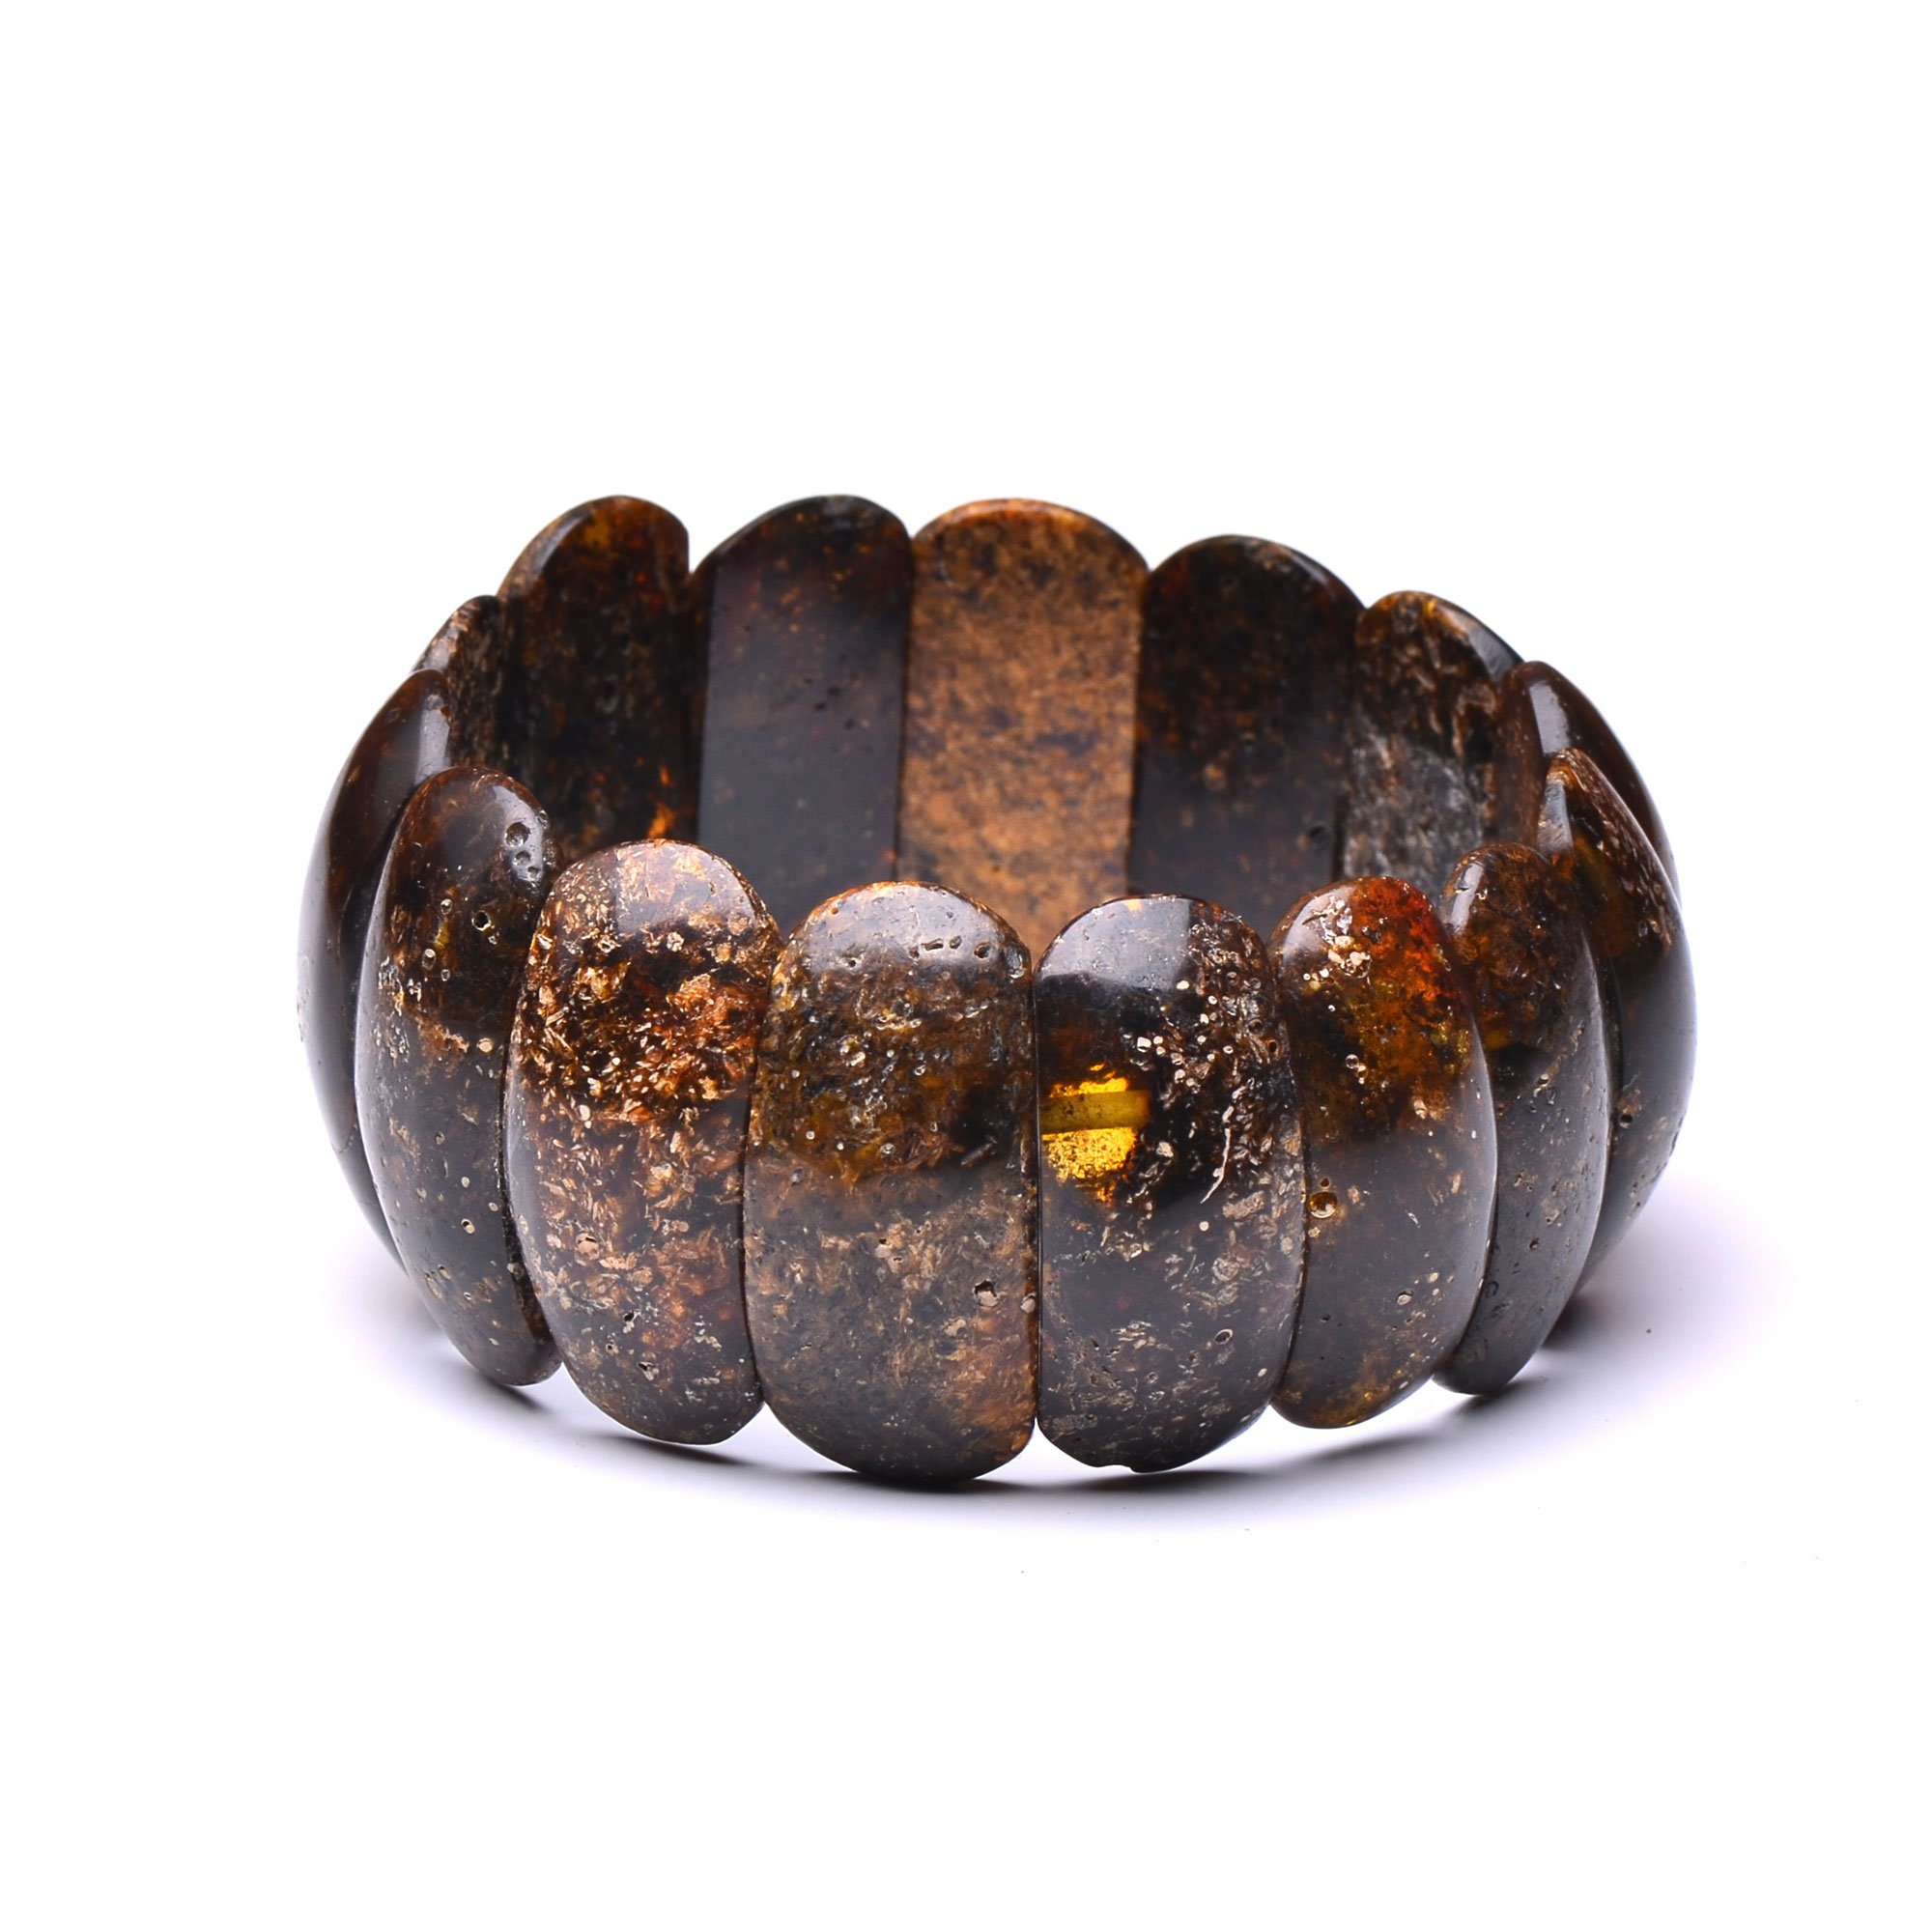 Certified Unique Amber Bracelet - Dark Amber Bracelet - Exclusive Bracelet Made from Amber